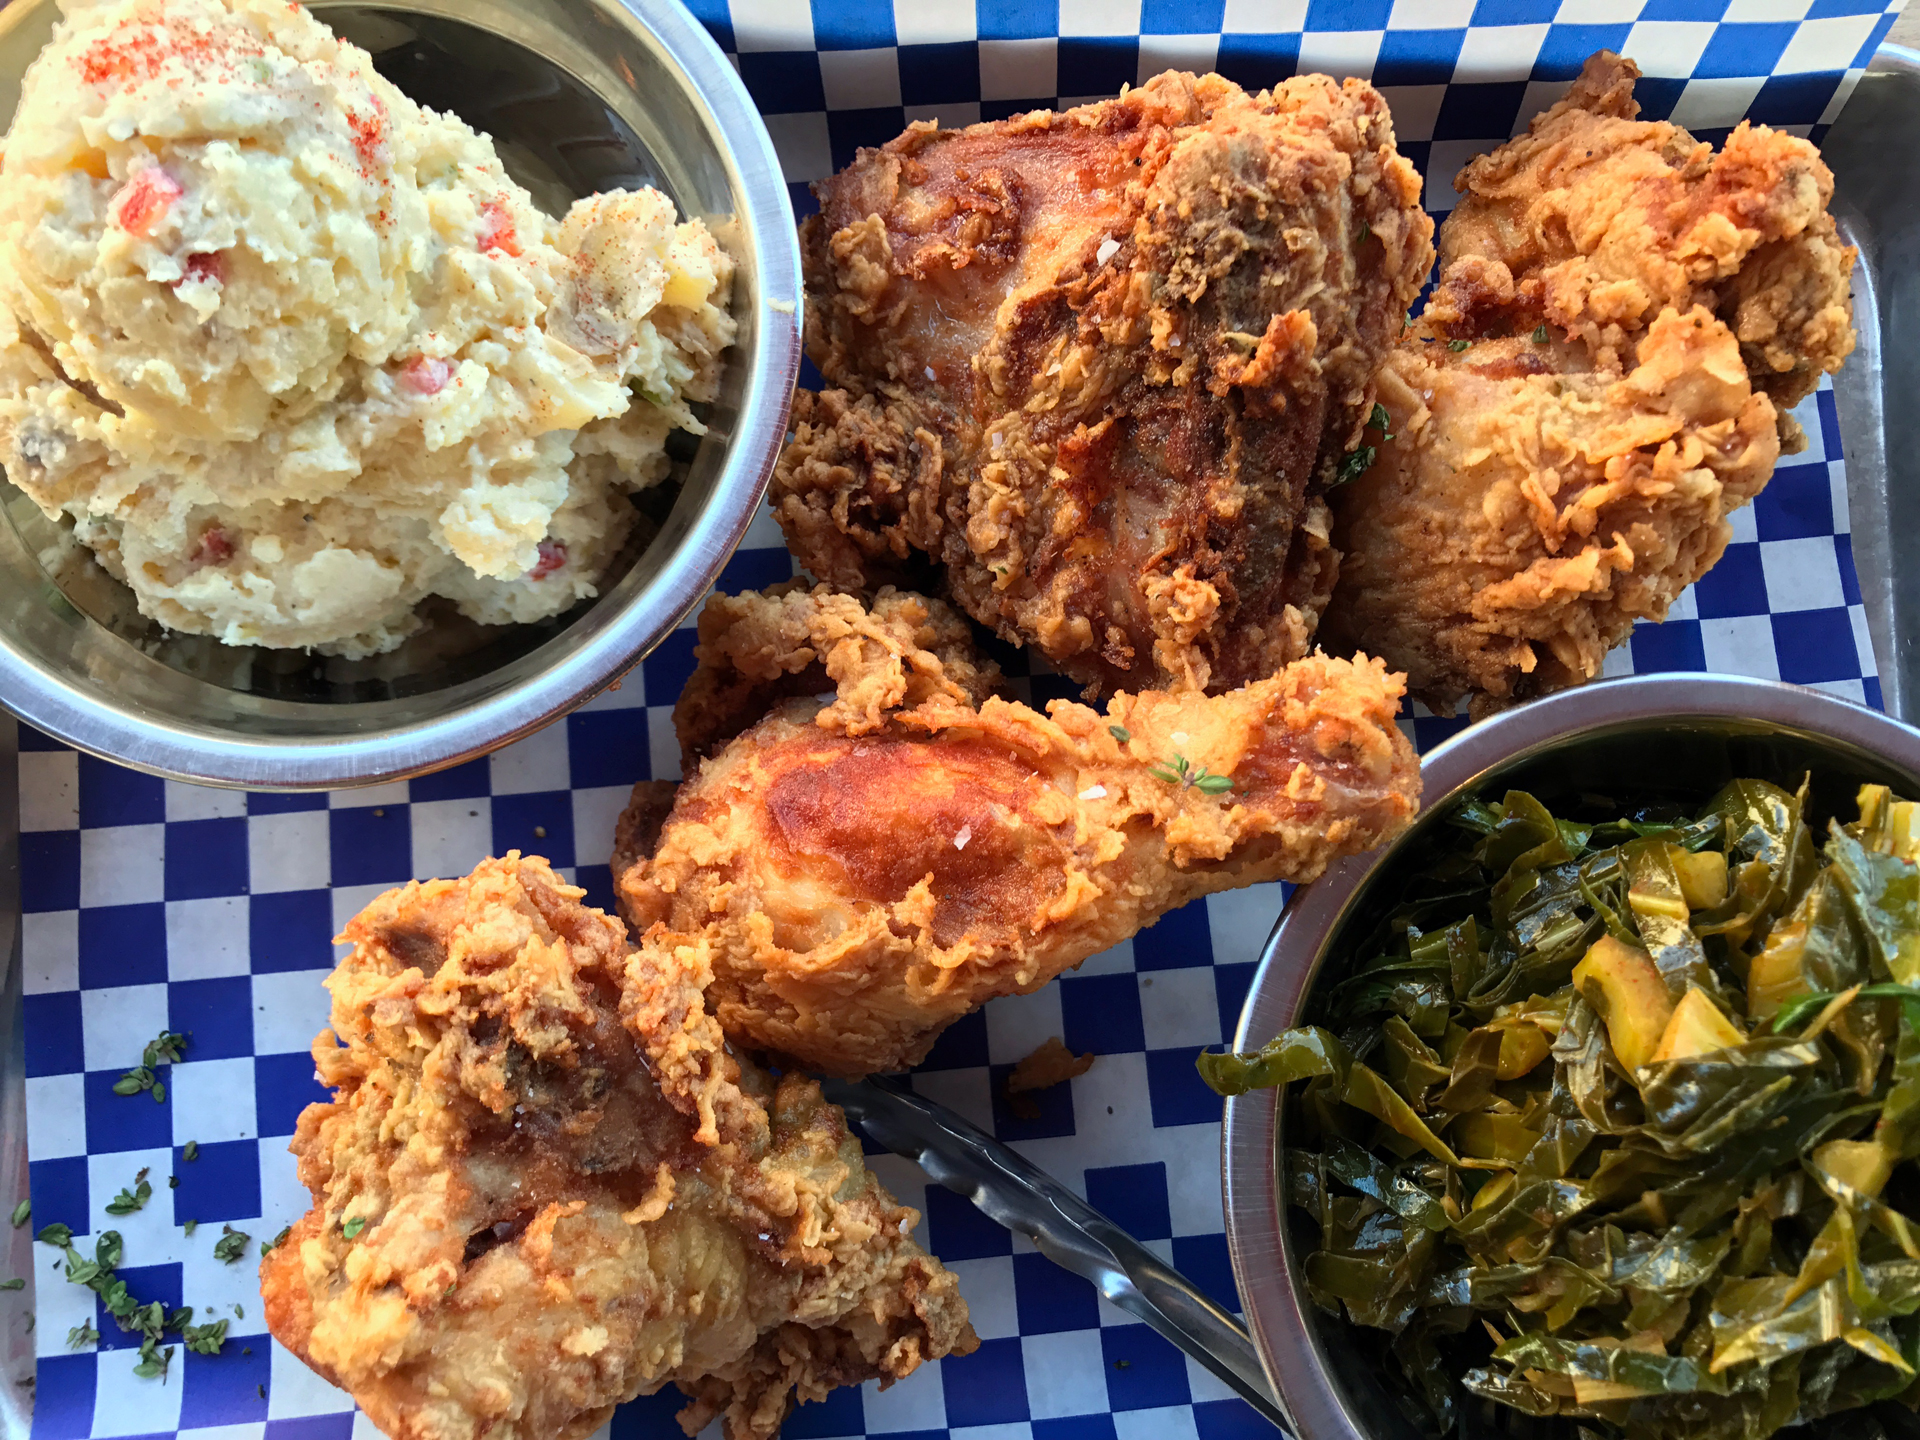 Fried Chicken Dinner at Miss Ollie's in Swans Market in Old Oakland.